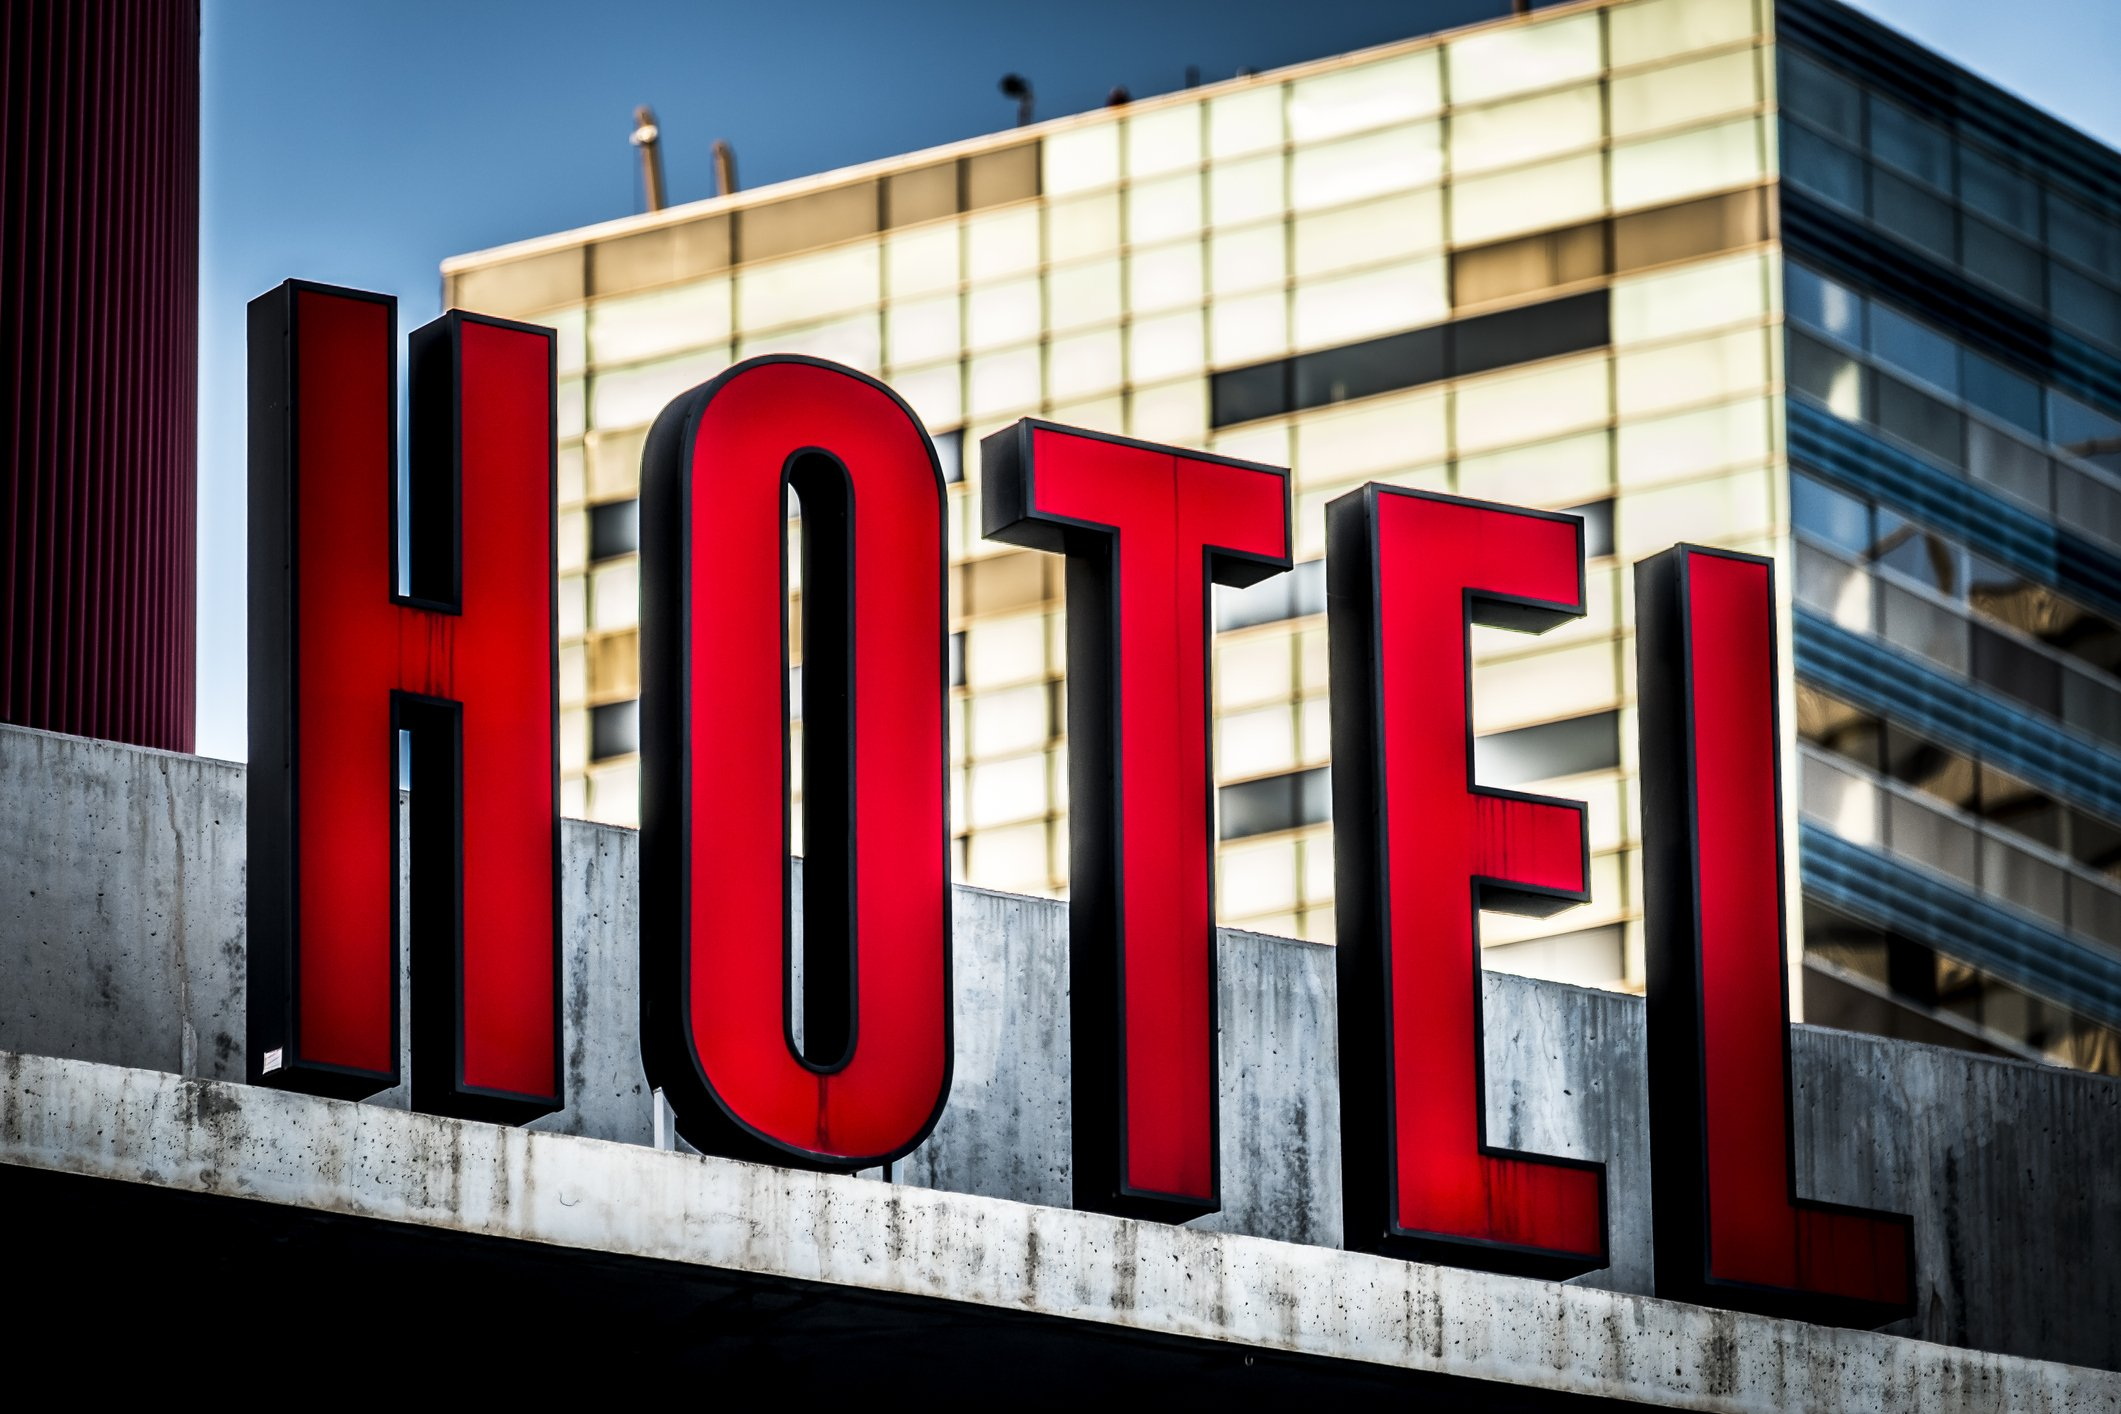 Signboard of an hotel. | Photo: Getty Images